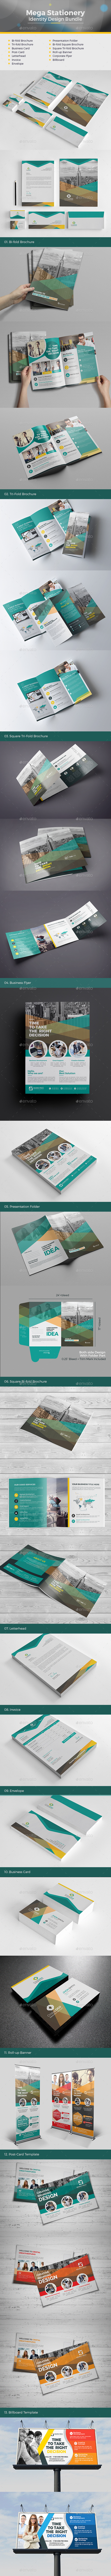 Business Identity Mega Branding Bundle - Stationery Print Templates